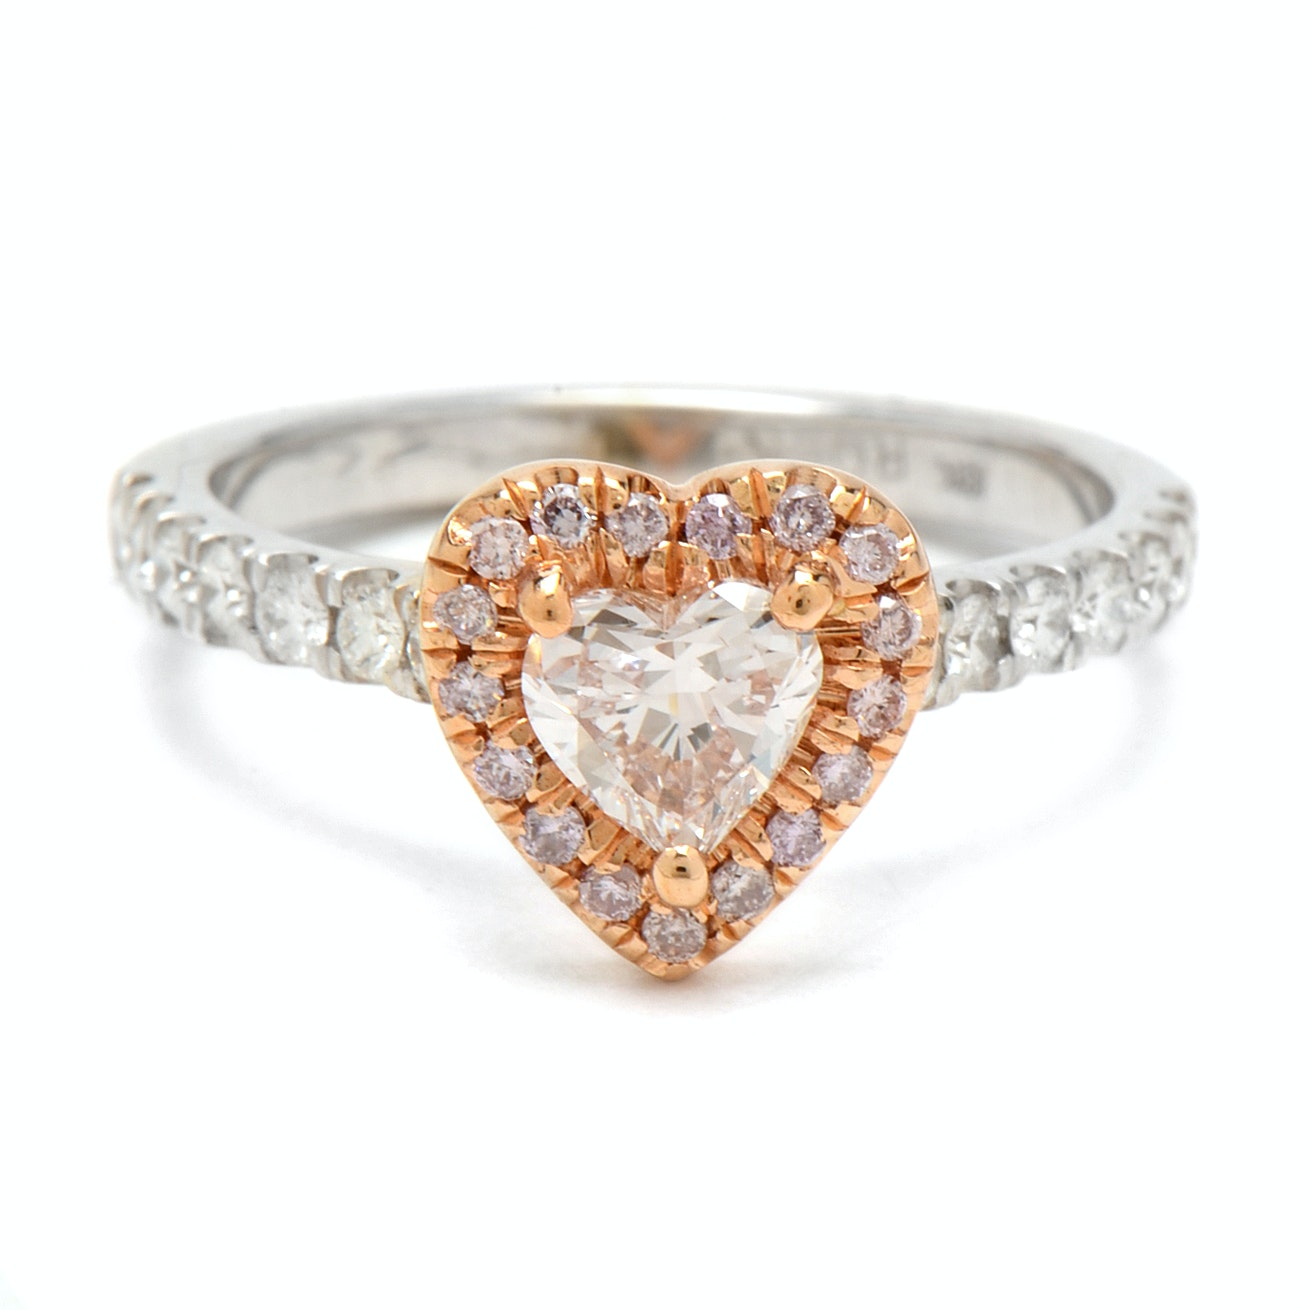 18K White Gold Faint Pink Heart-Cut Diamond Engagement Ring With GIA Report